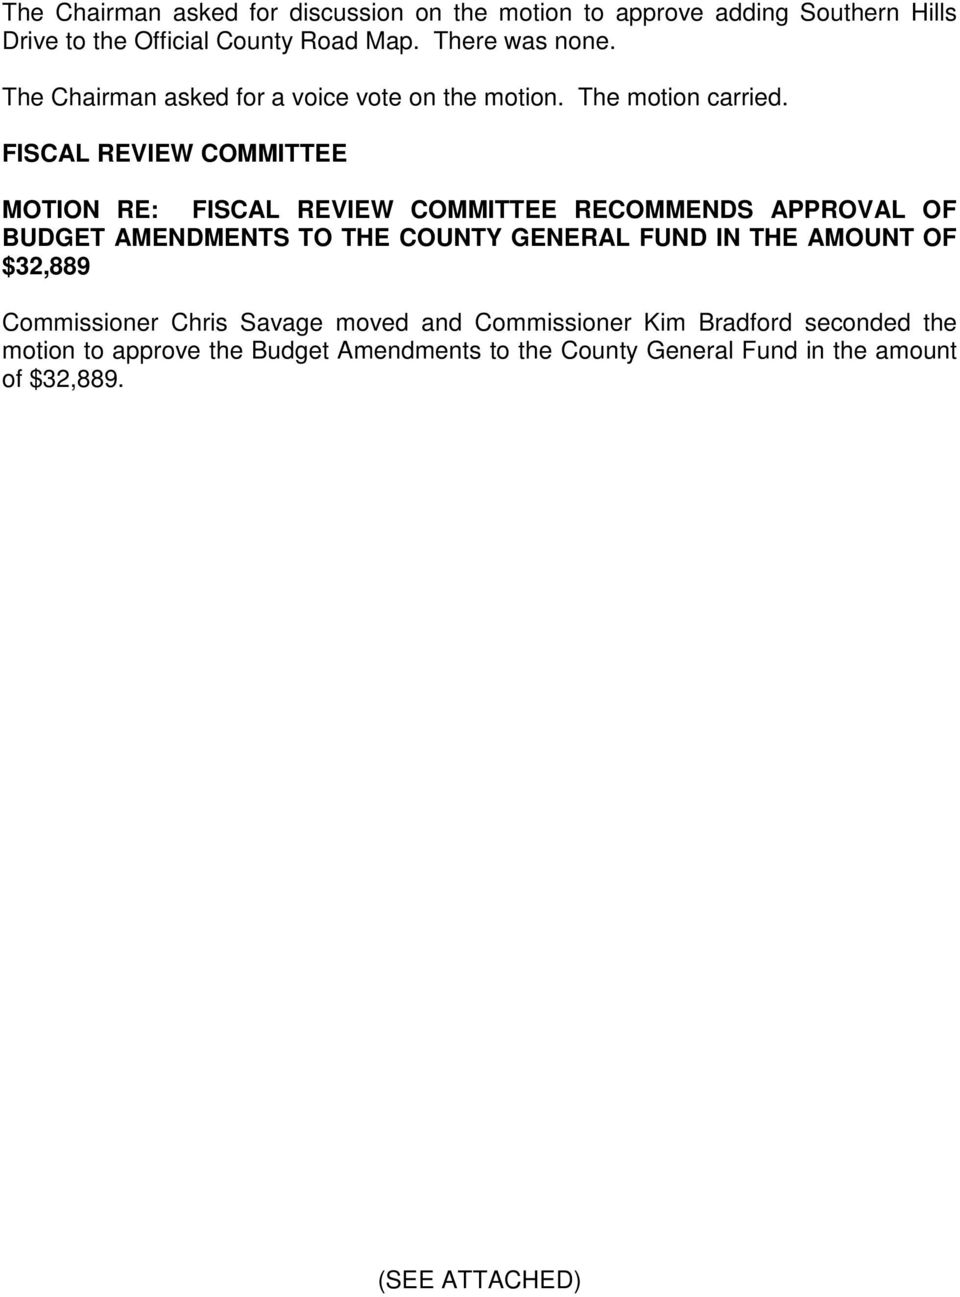 FISCAL REVIEW COMMITTEE MOTION RE: FISCAL REVIEW COMMITTEE RECOMMENDS APPROVAL OF BUDGET AMENDMENTS TO THE COUNTY GENERAL FUND IN